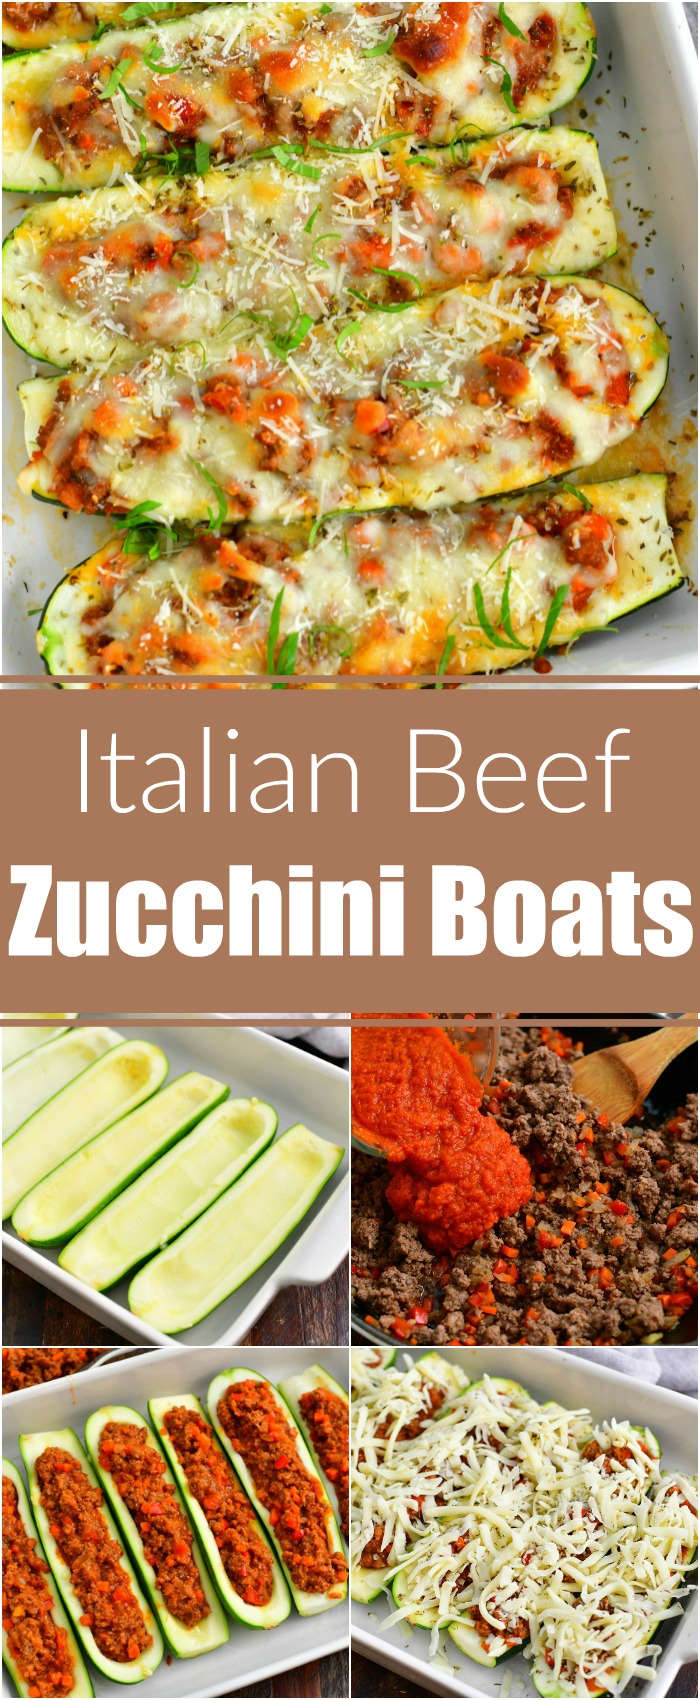 collage of five images of baked zucchini boats on top and then hollowed zucchini in a baking dish, adding sauce to the cooked beef, zucchini stuffed with beef mixture and zucchini boats topped with shredded Mozzarella cheese